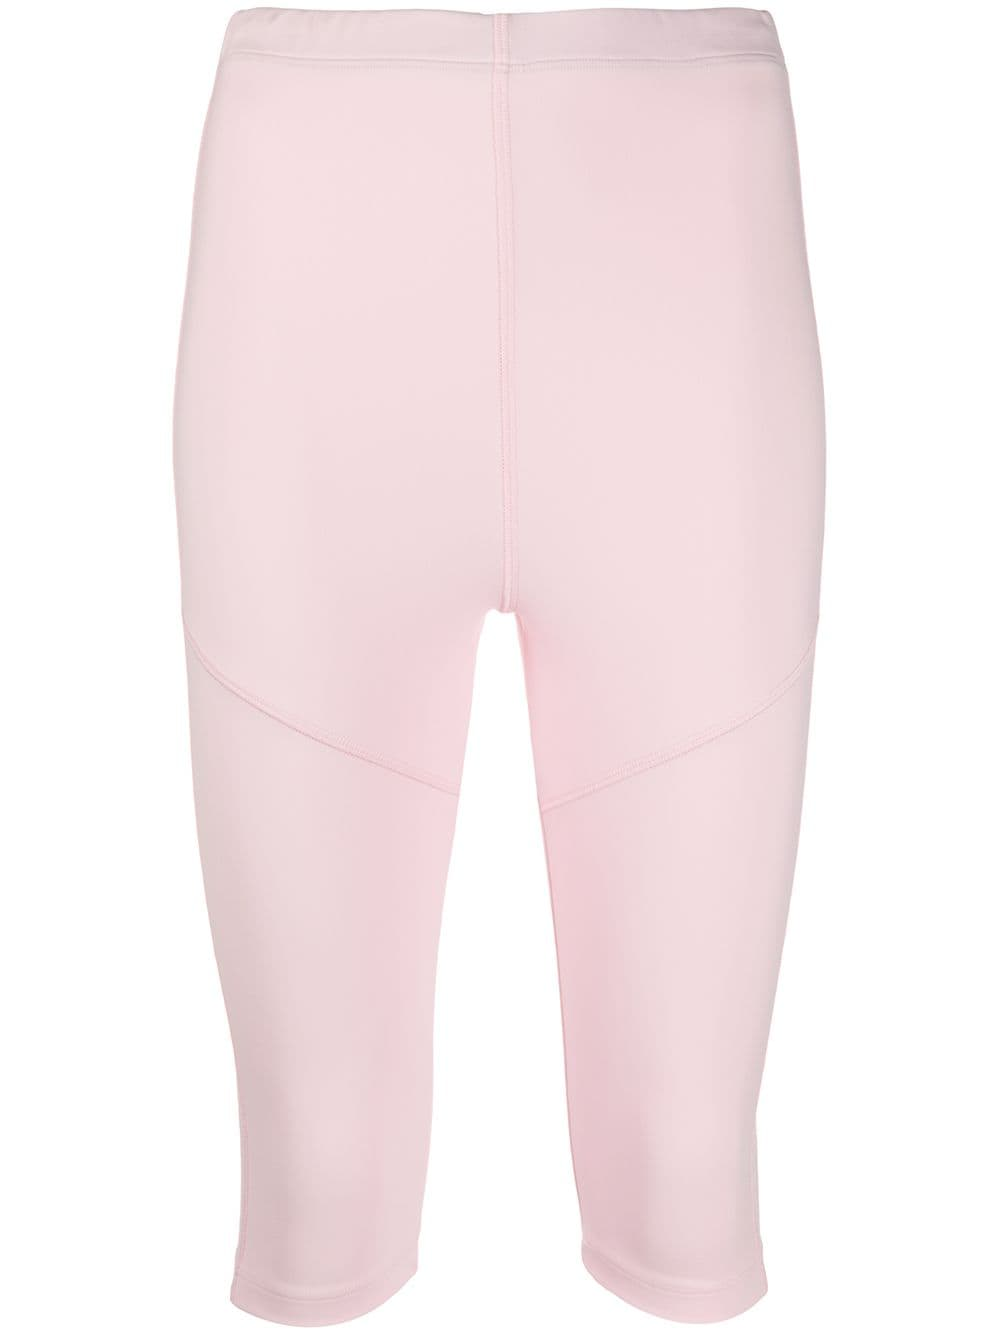 Styland cropped leggings - Pink von Styland